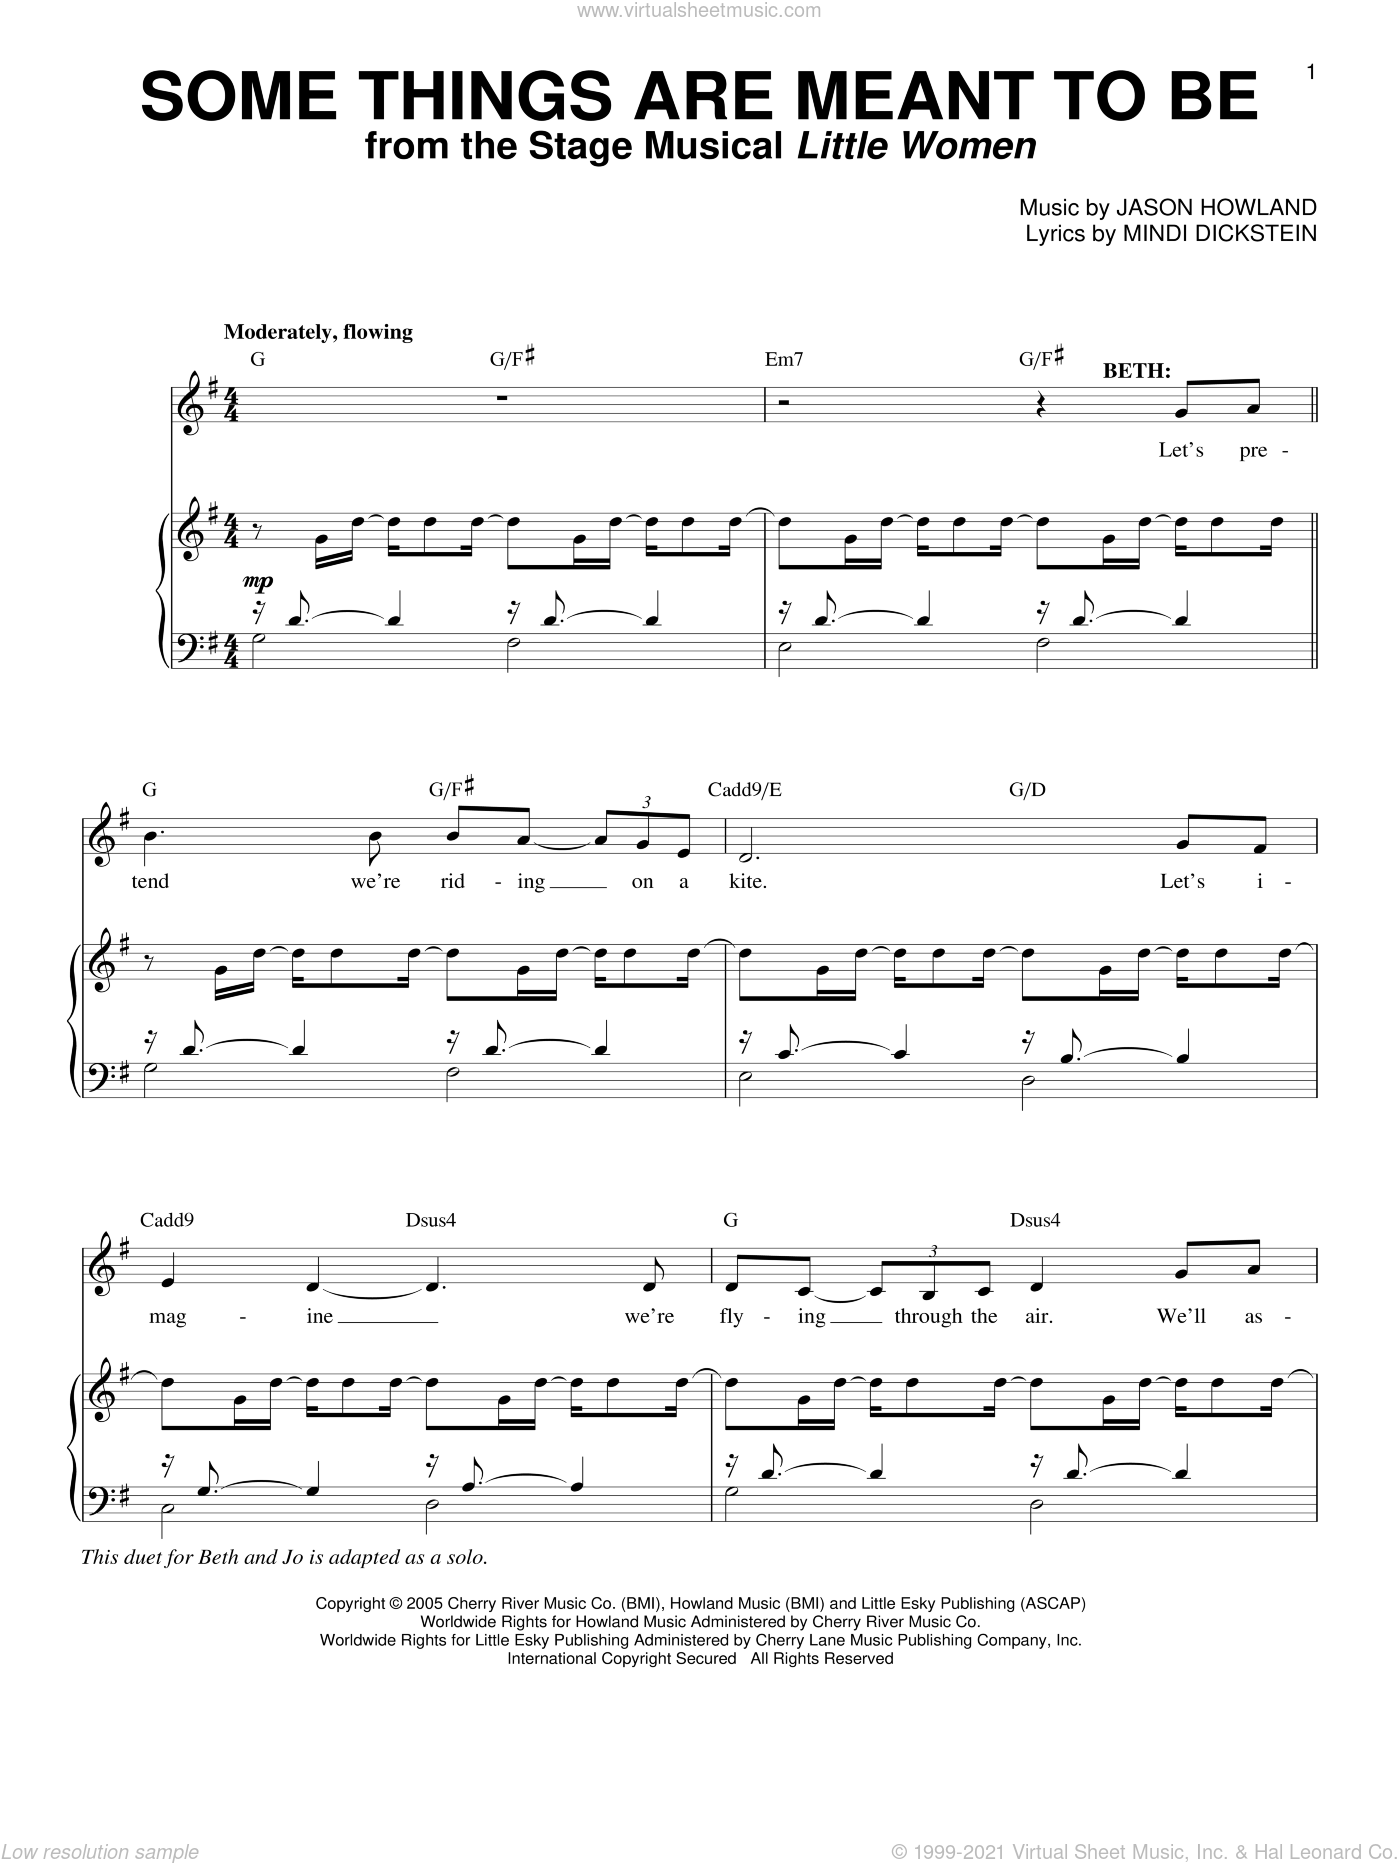 Some Things Are Meant To Be sheet music for voice and piano by Mindi Dickstein and Jason Howland, intermediate skill level